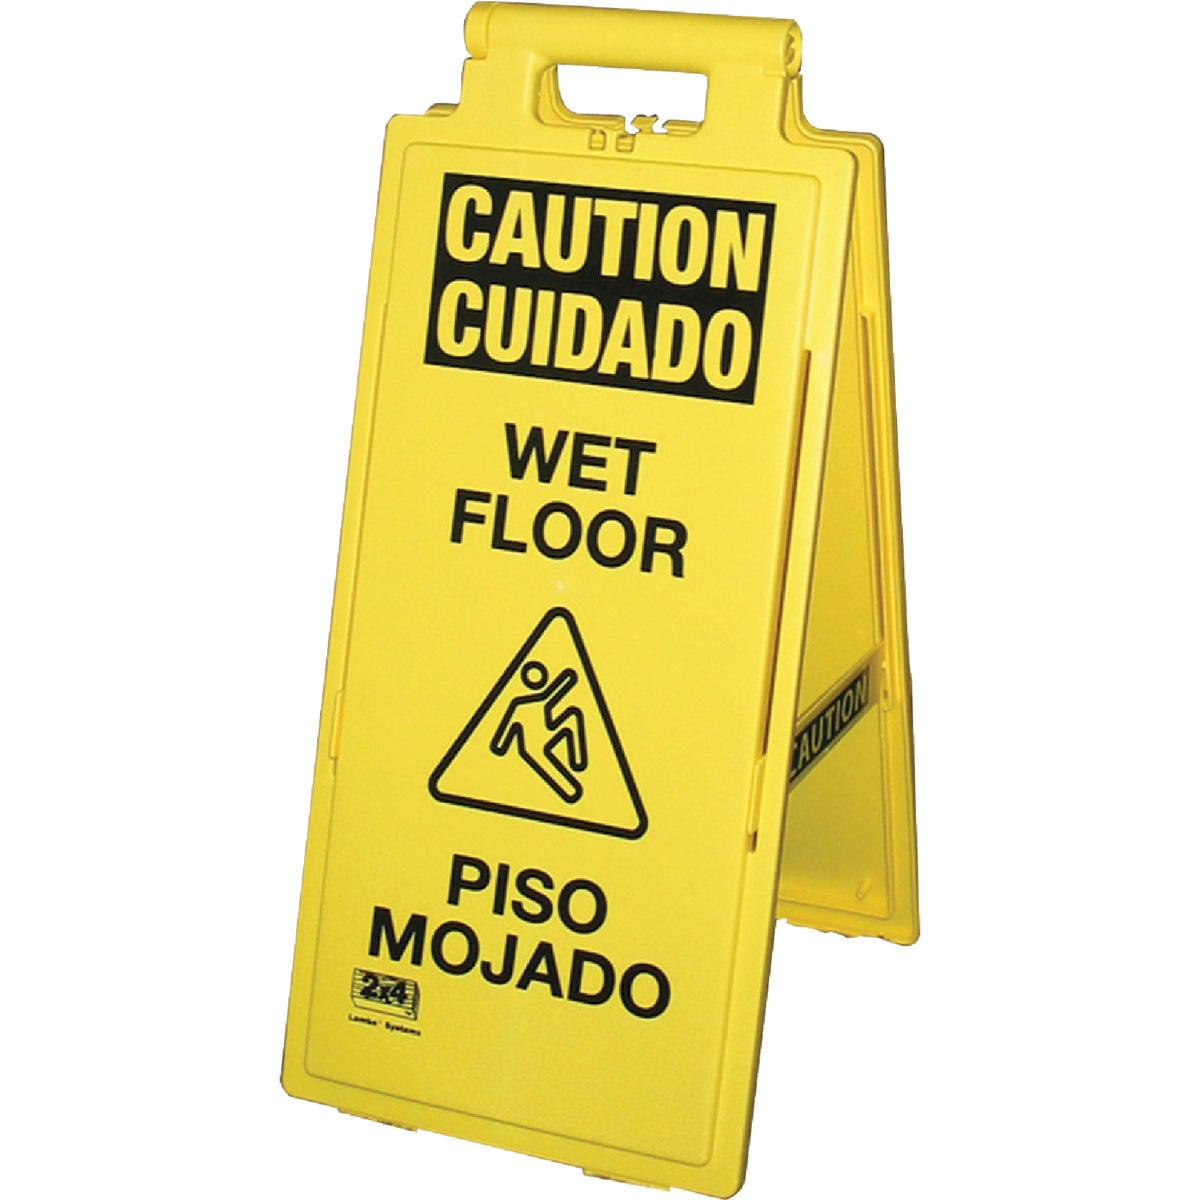 WET FLOOR SIGN ENG/SPAN - 24106-90 by Impact Prod